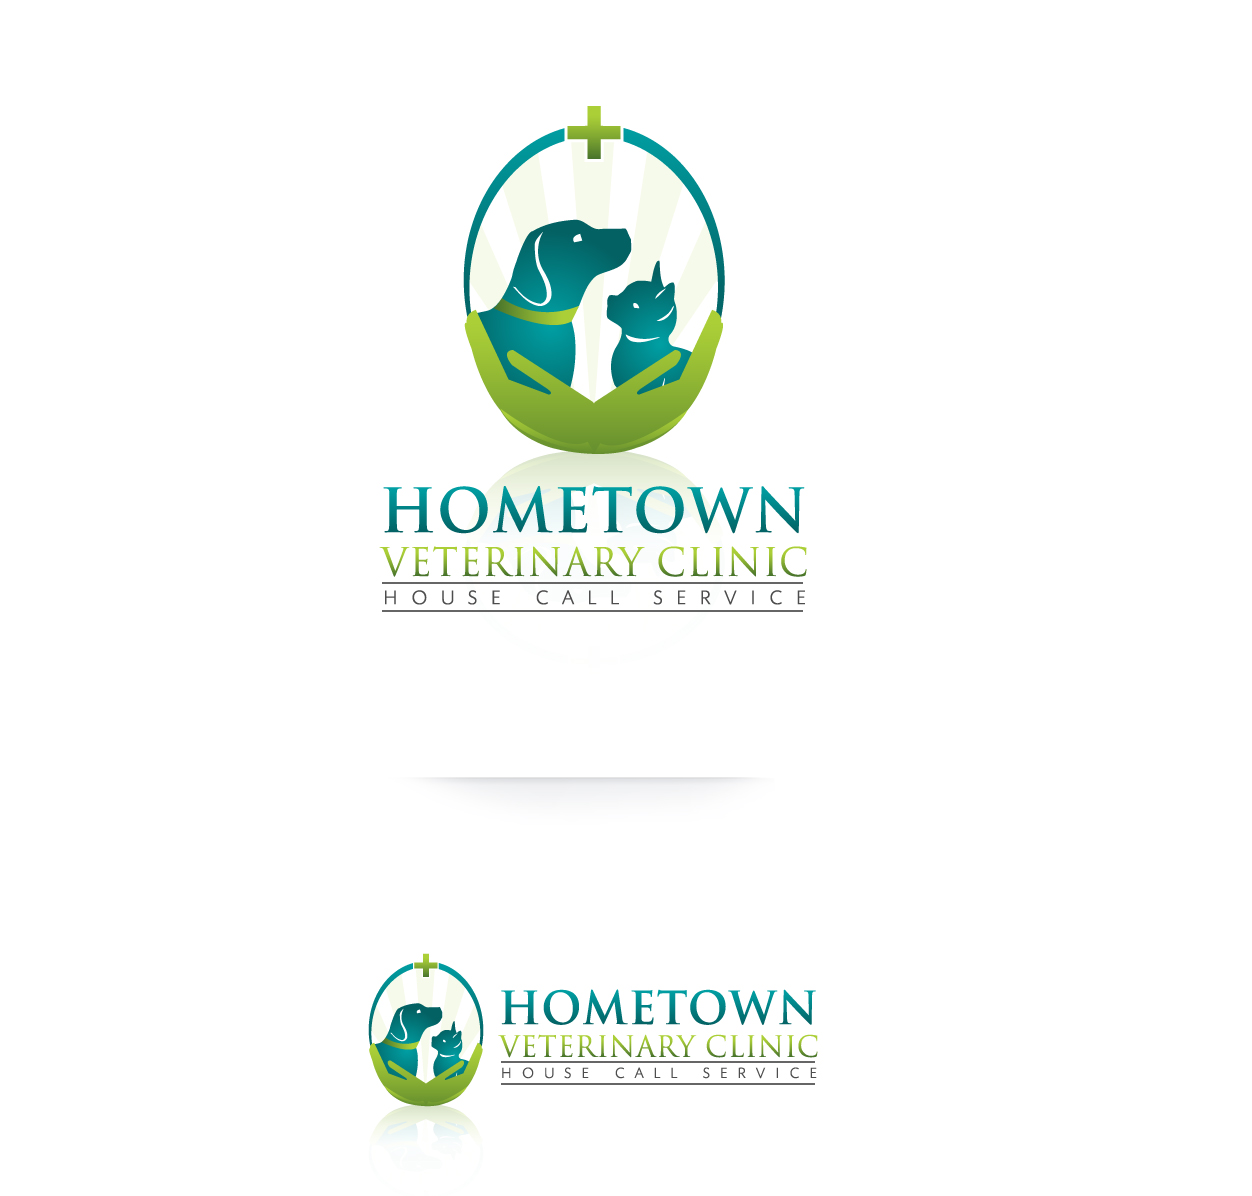 Logo Design by Tarek Khenfir - Entry No. 46 in the Logo Design Contest Captivating Logo Design for Hometown Veterinary Clinic.